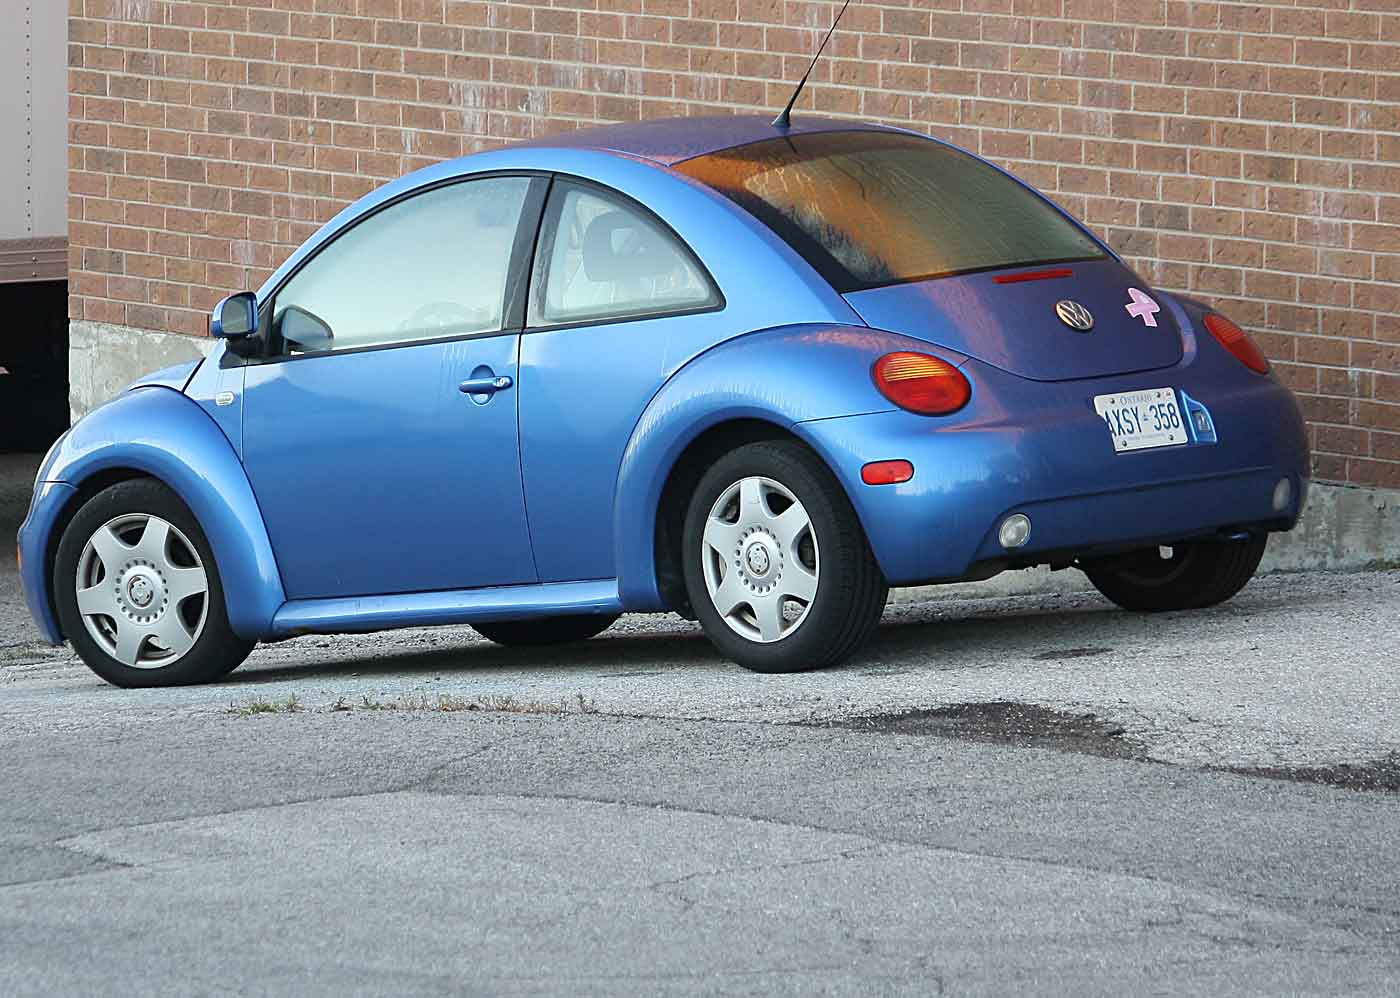 Punch Buggy Car >> Eye Candy Blue Monday Punch Buggy